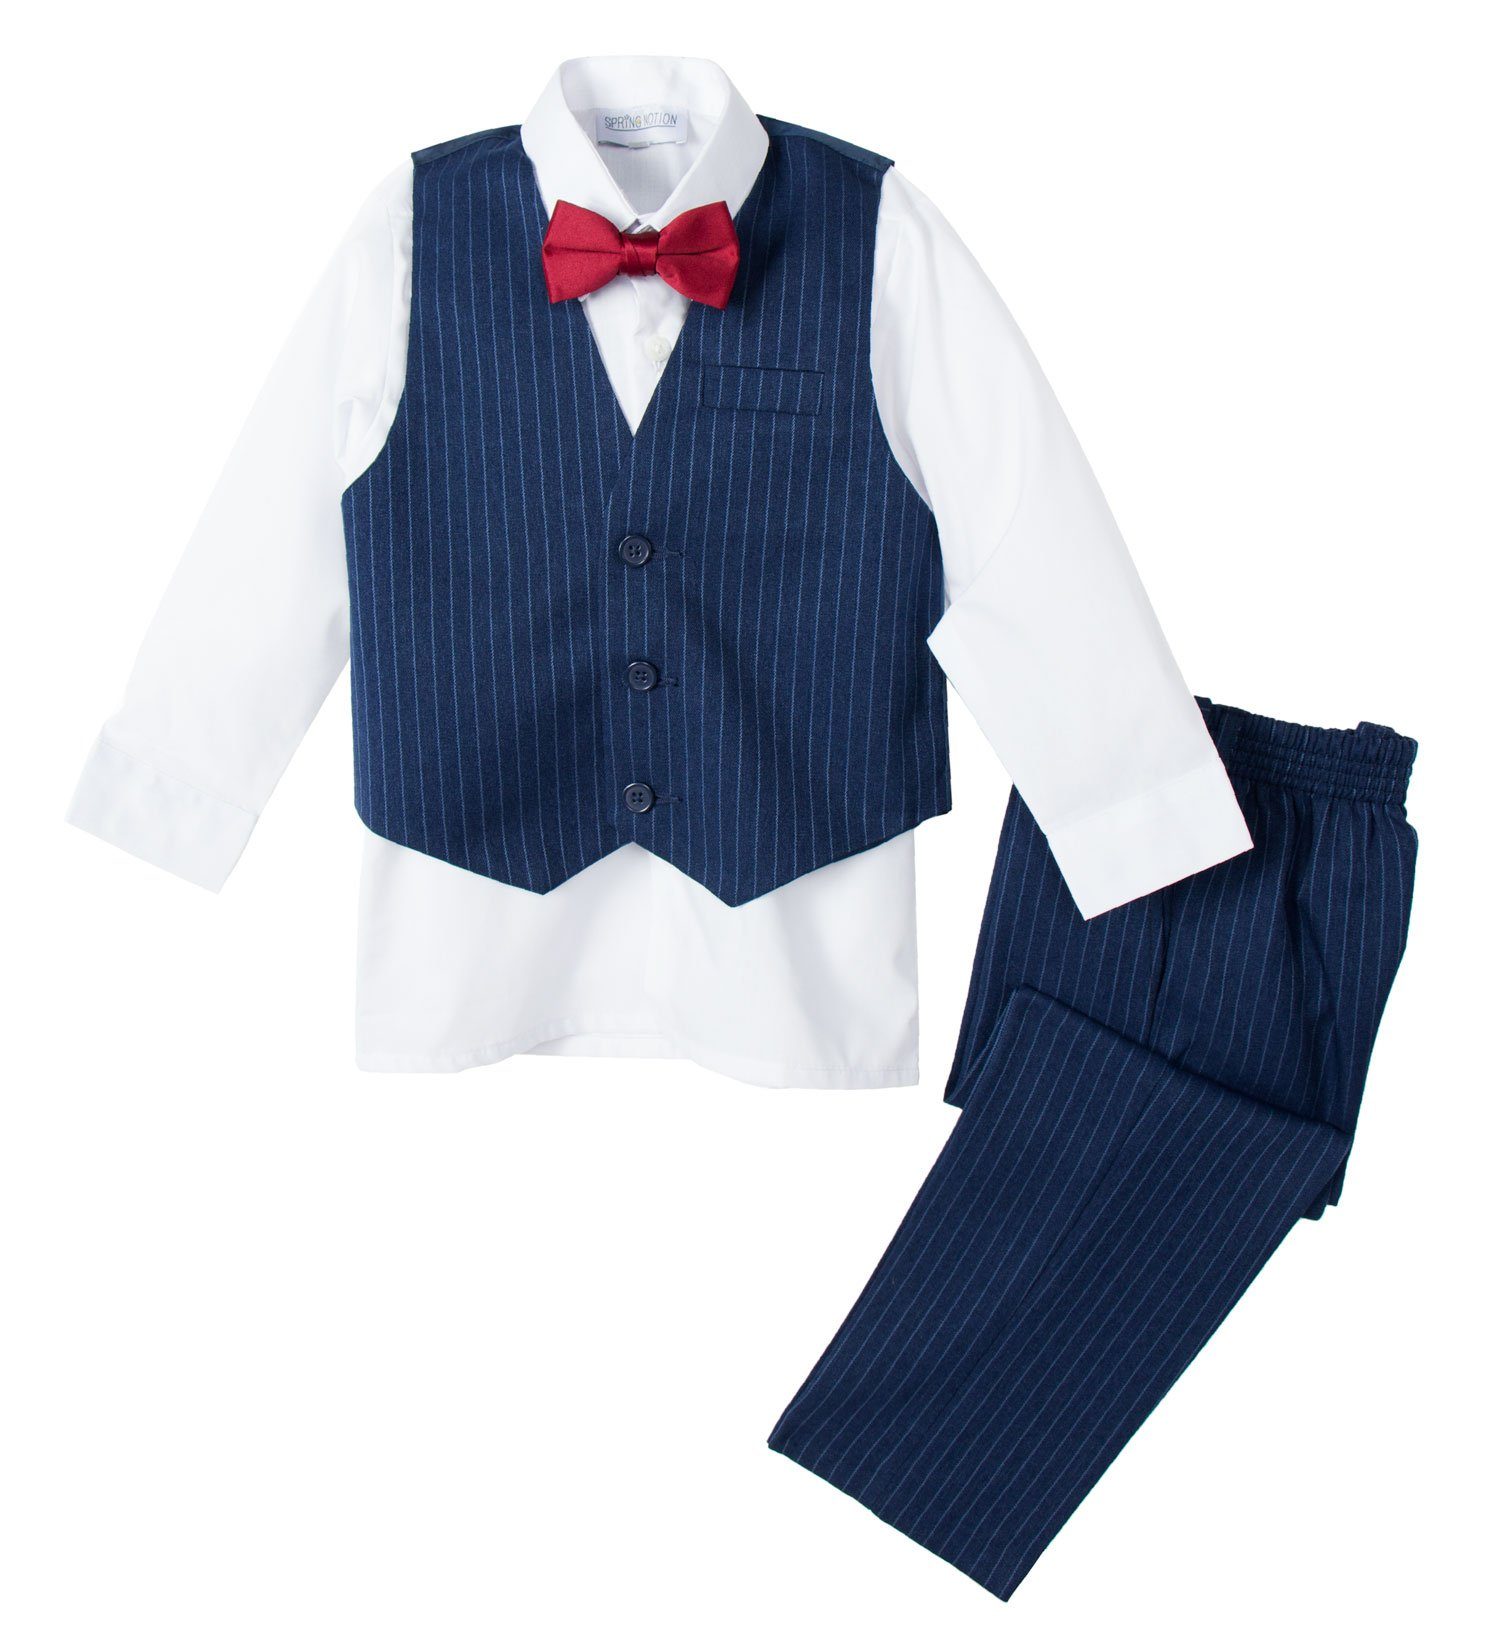 Spring Notion Baby Boys' Fall Collection Pinstripe Vest Set 18M Blue-White-Red